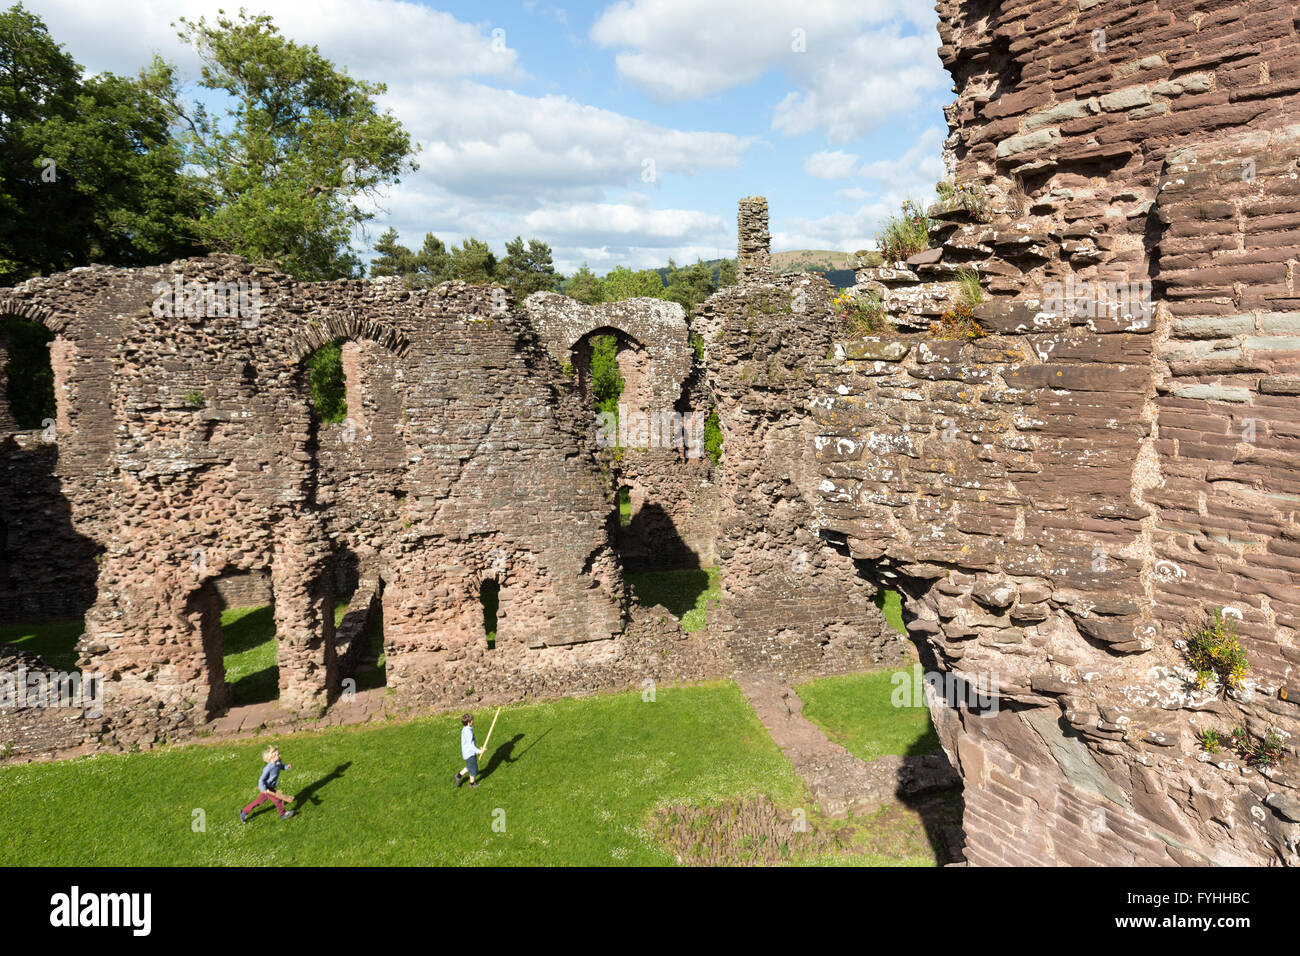 Two boys playing with toy swords in the ruined castle at Grosmont, Monmouthshire, Wales, UK - Stock Image